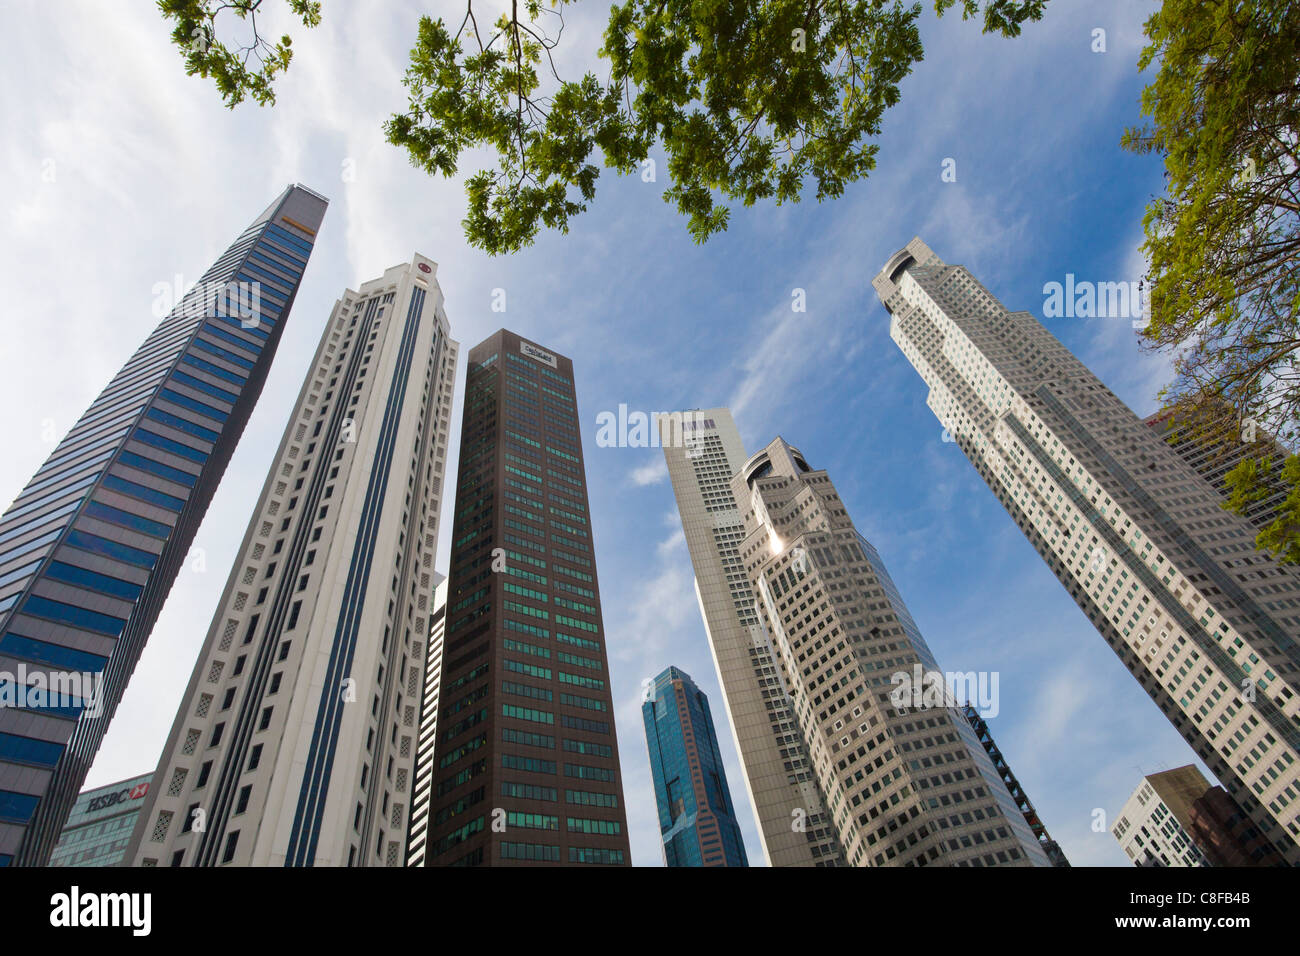 Singapore, town, city, blocks of flats, high-rise buildings, skyscrapers, Downtown, Skyline, houses, homes, look, - Stock Image